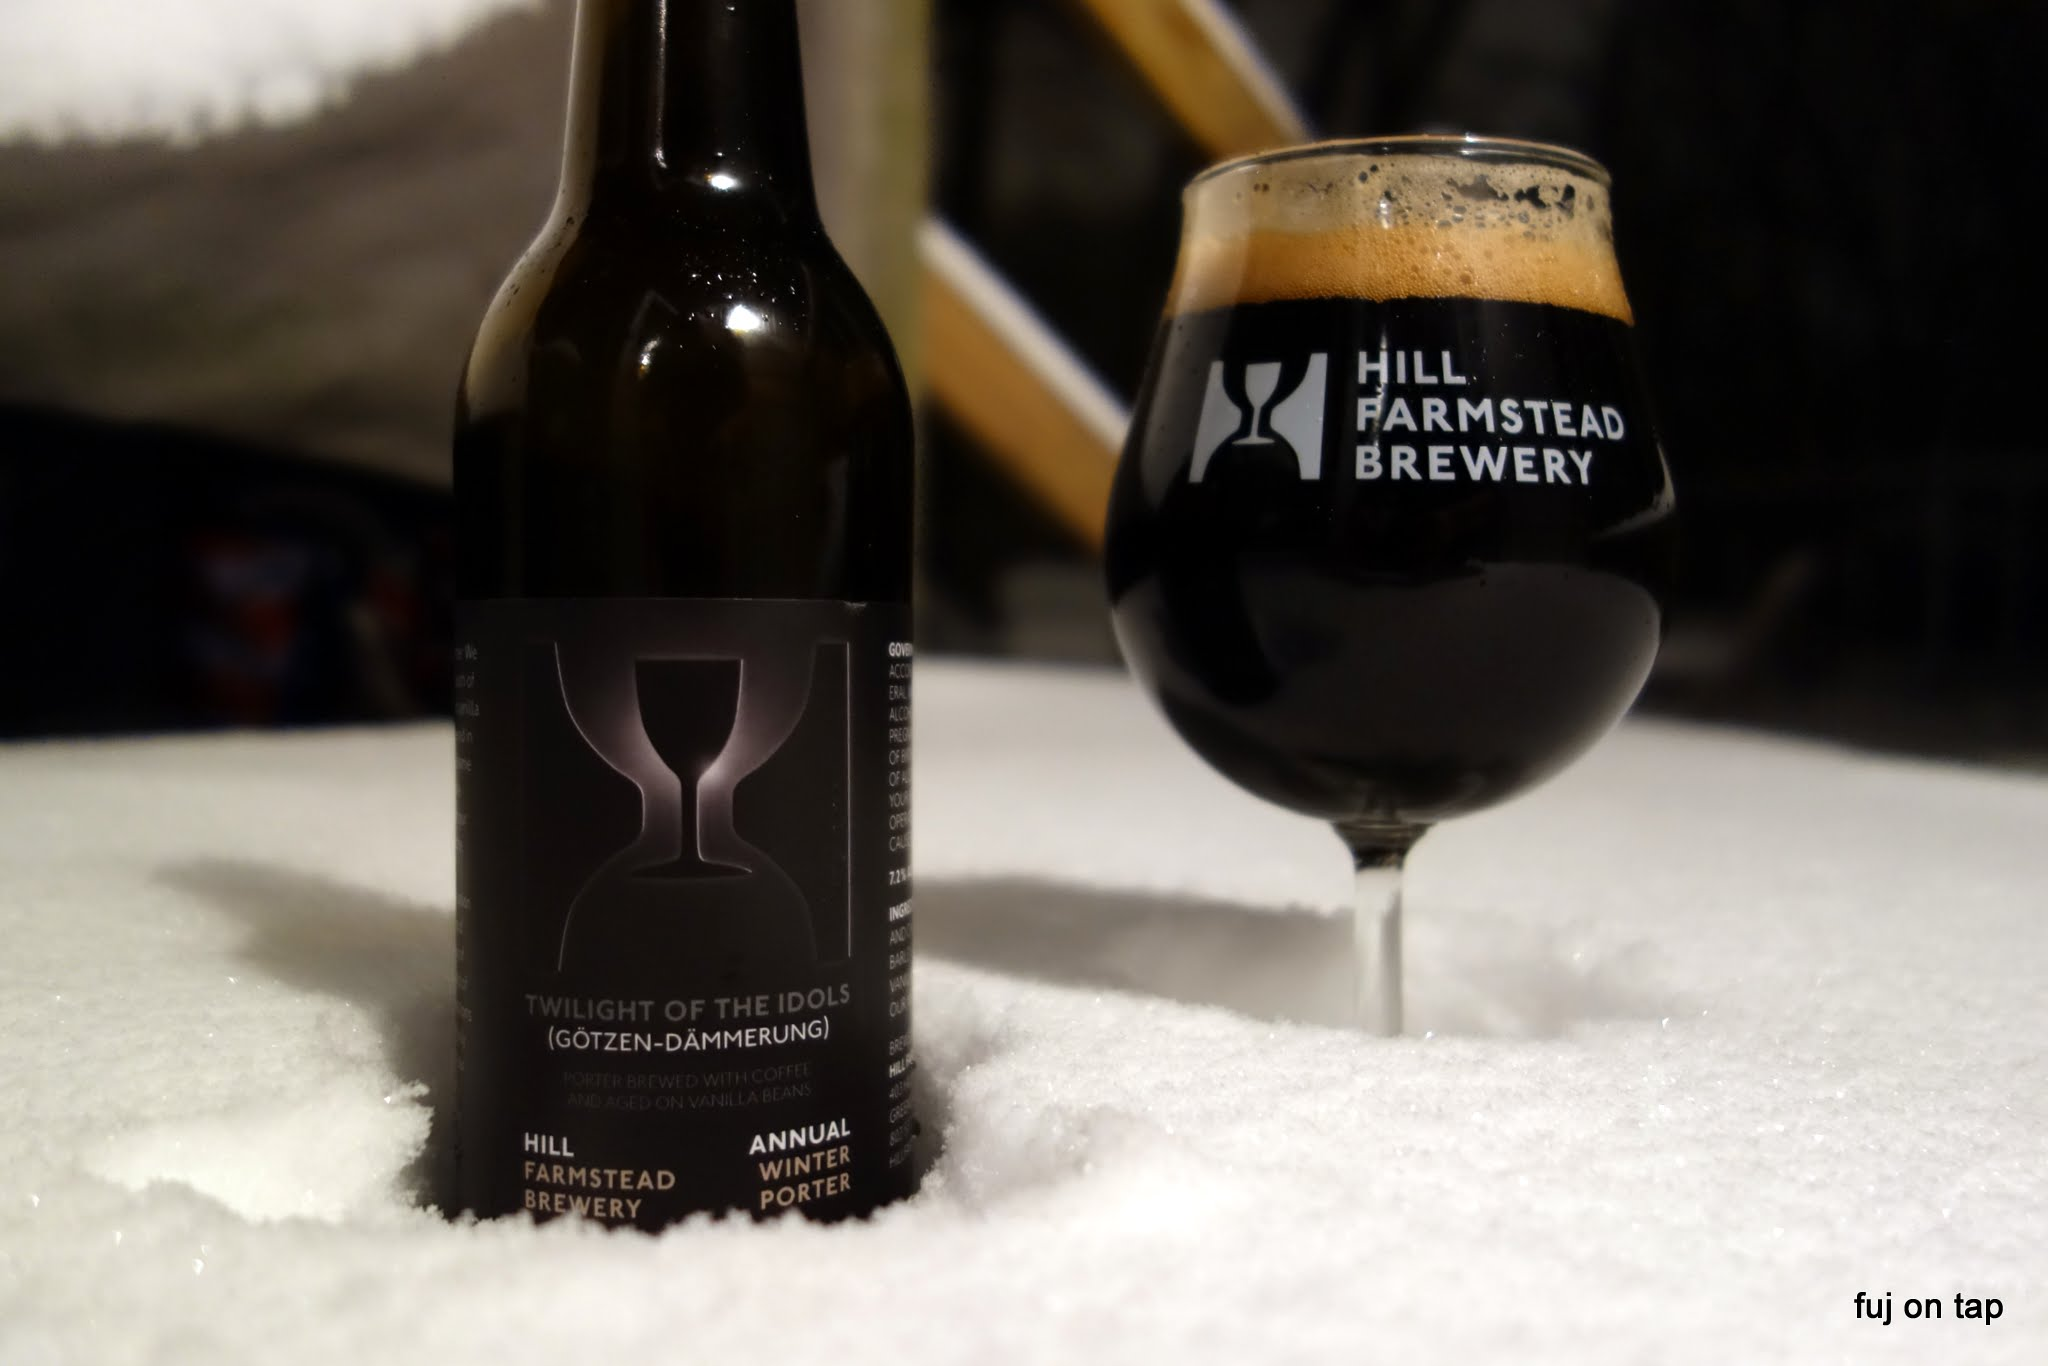 Hill Farmstead Twilight of the Idols